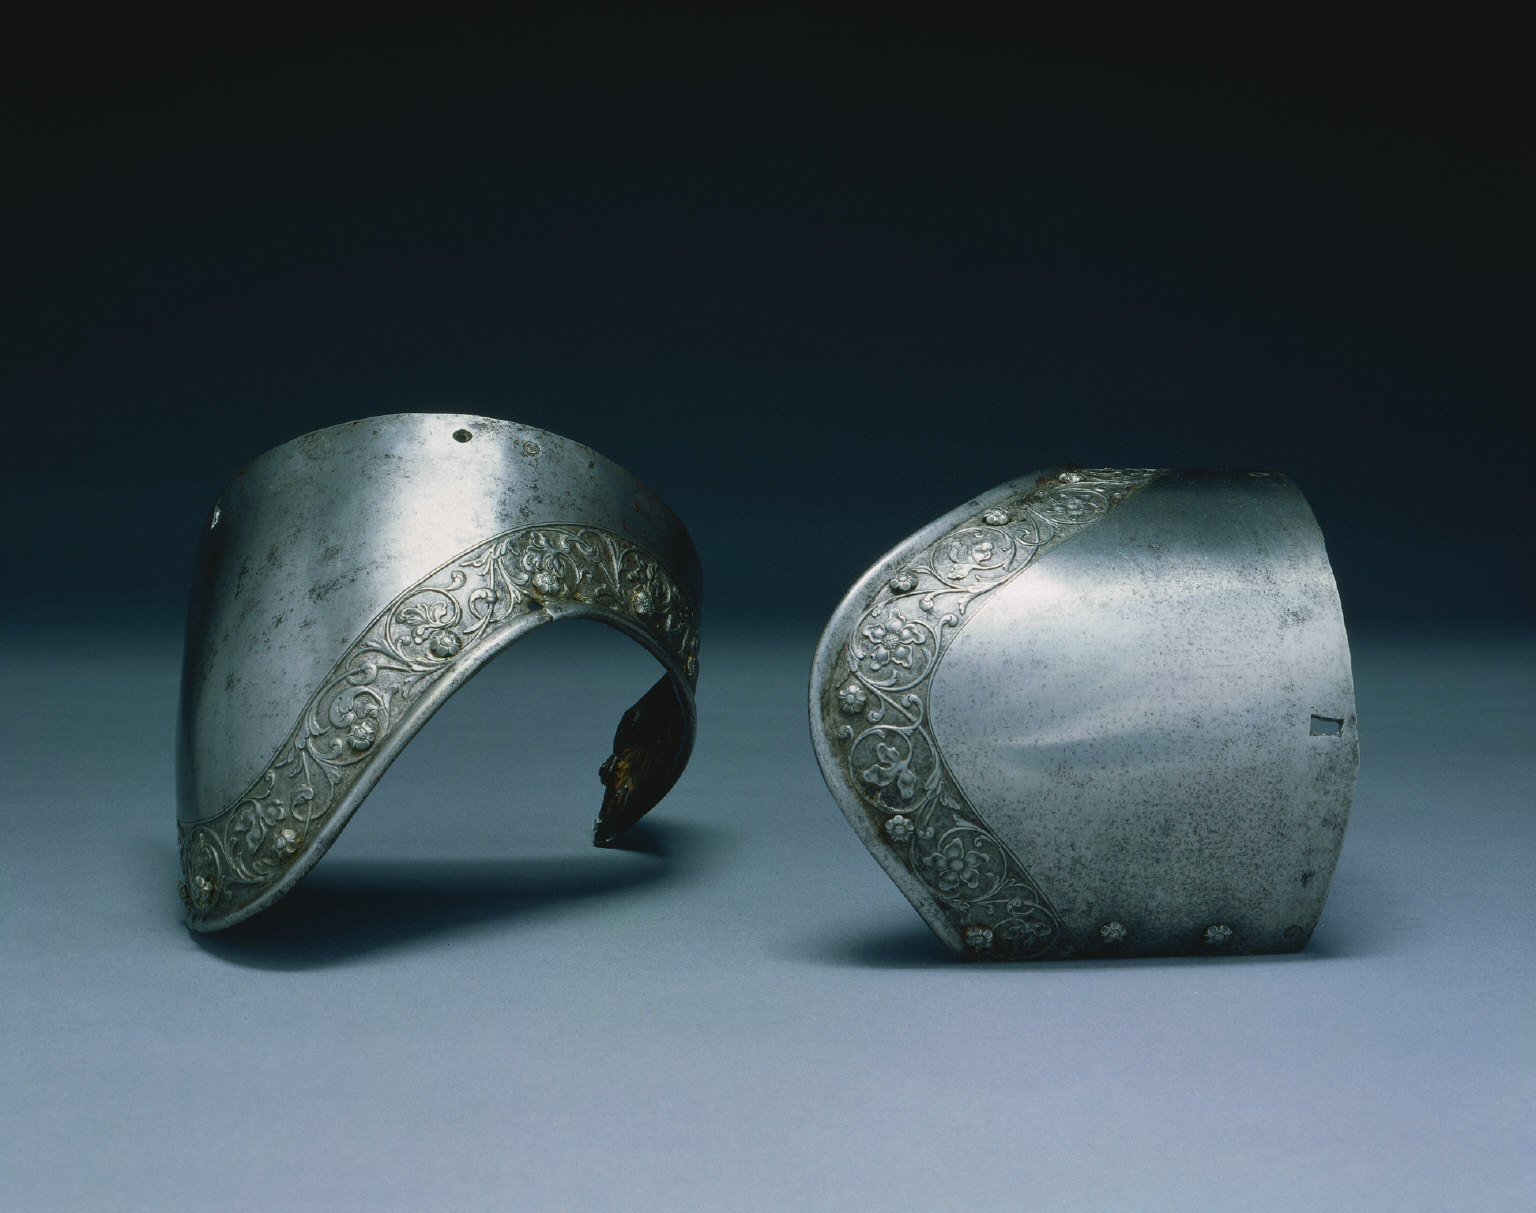 Pair of Upper Arm Canons